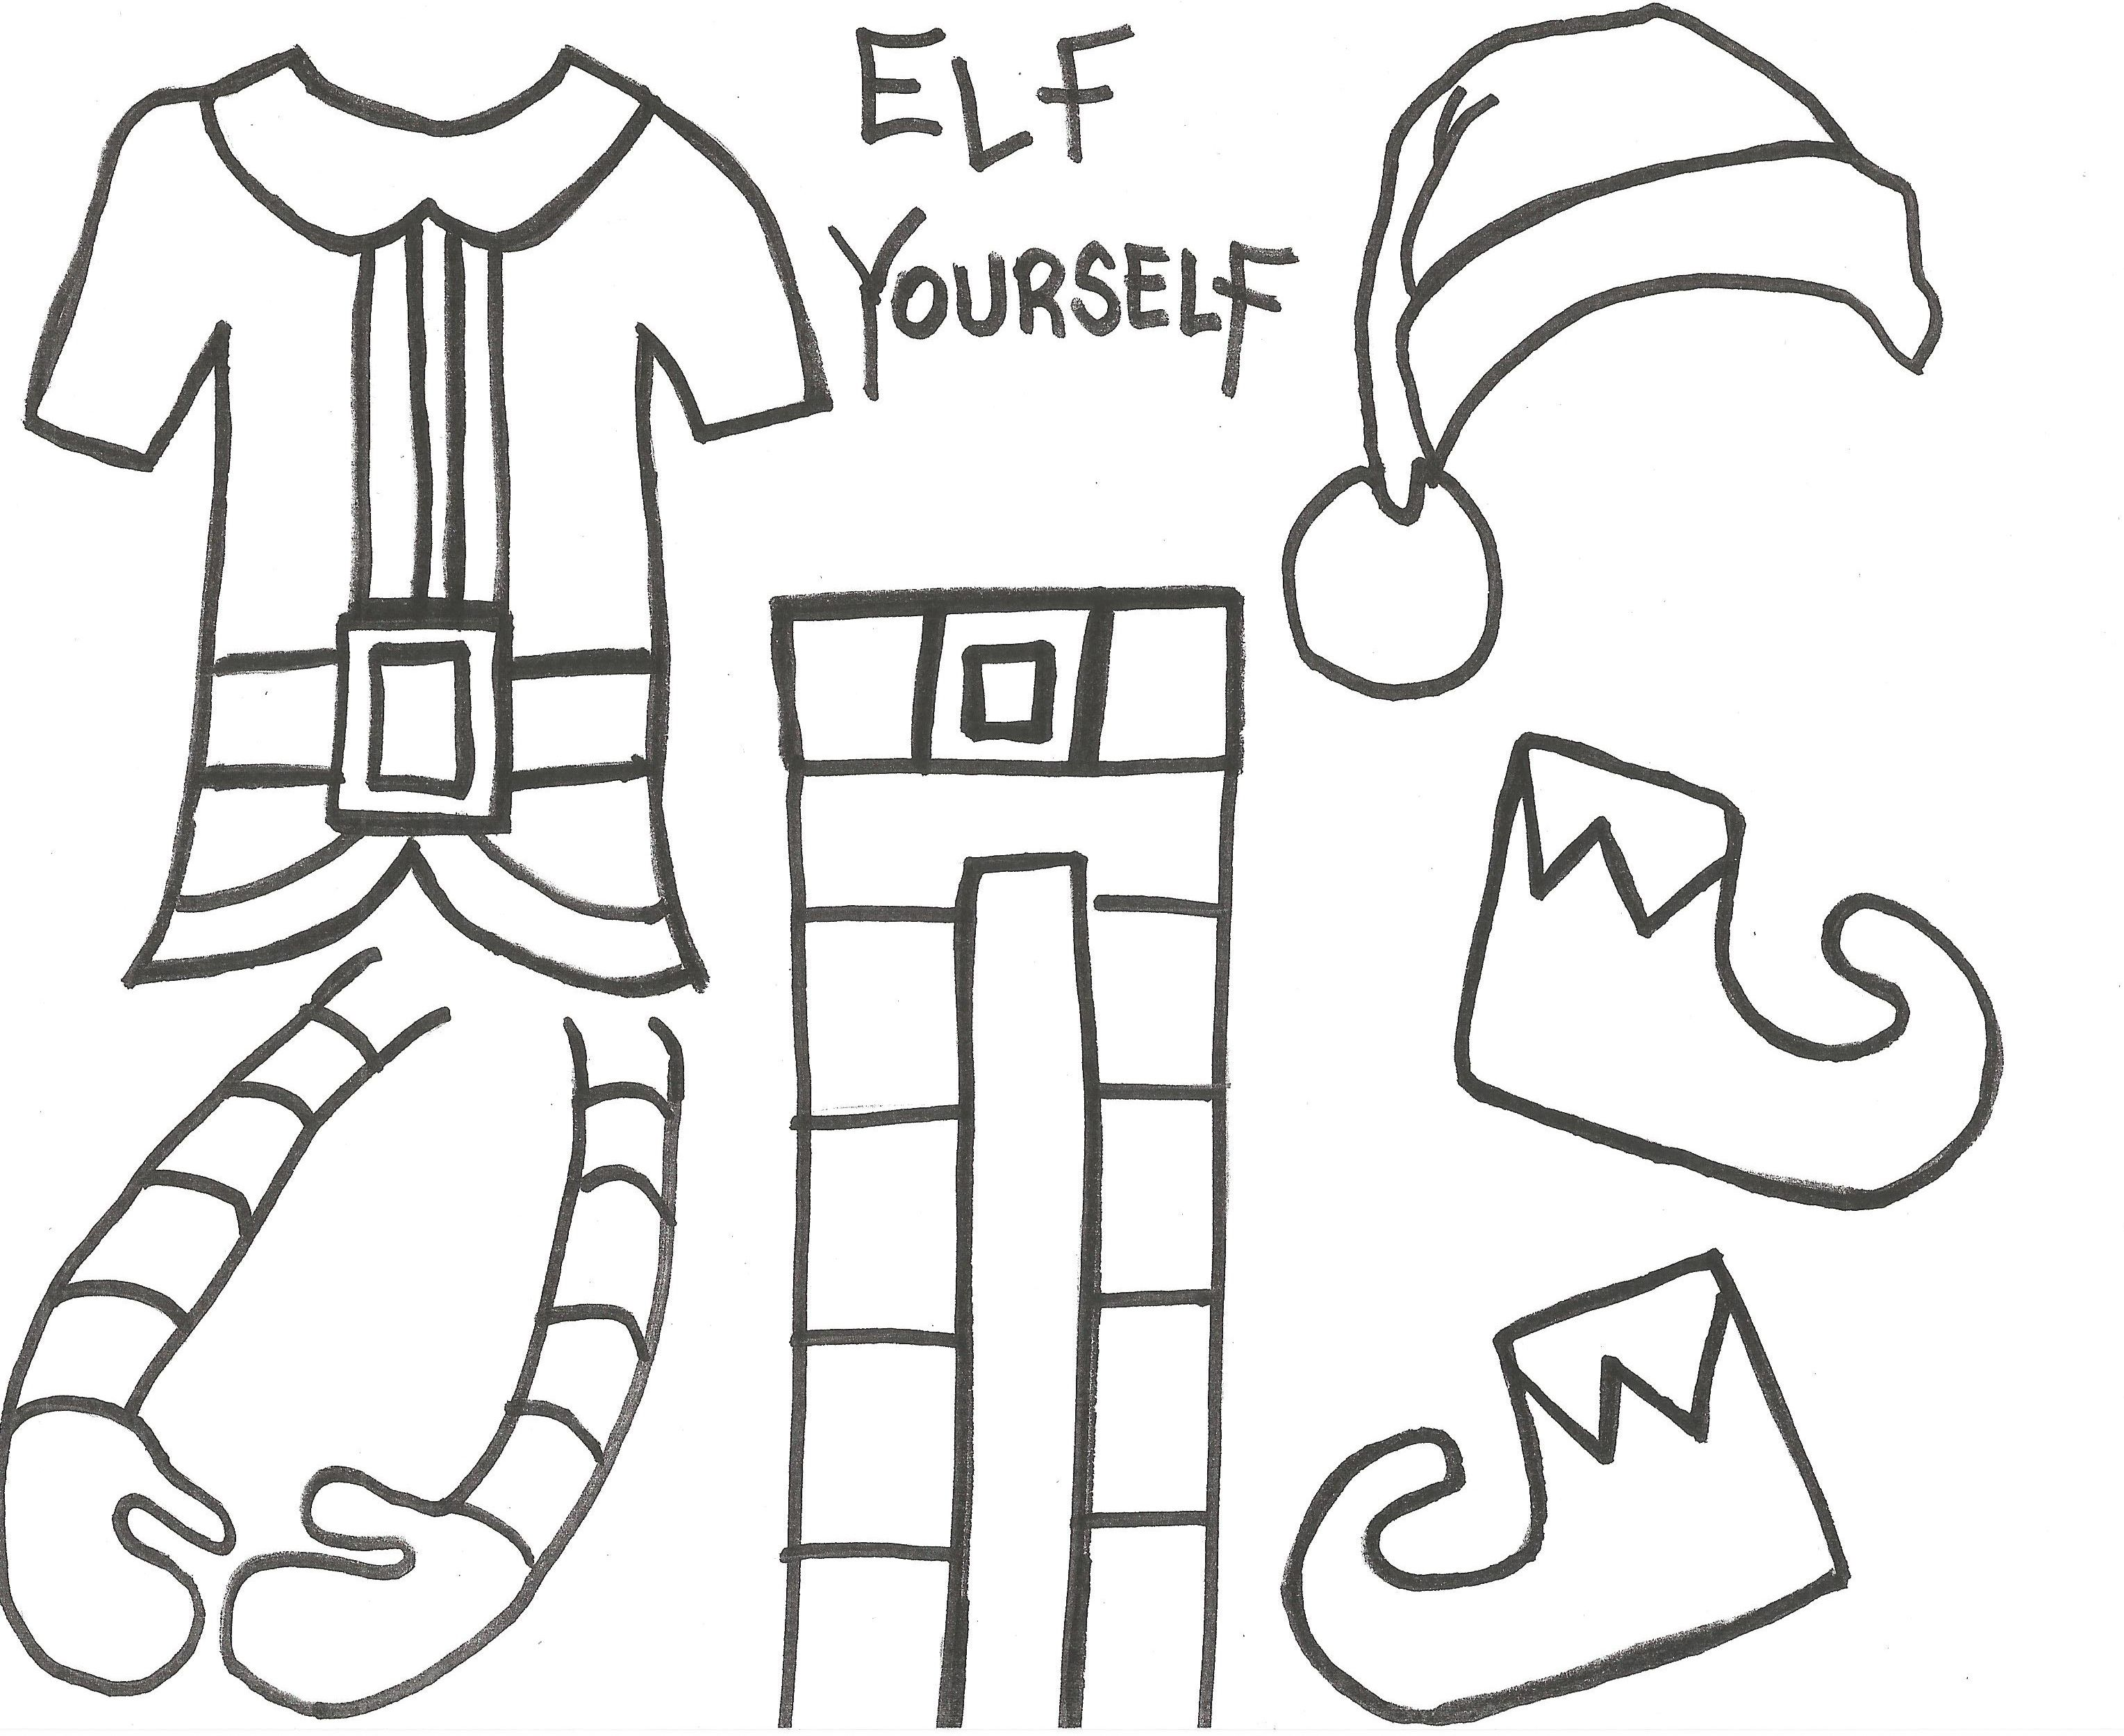 ELF YOURSELF Take up close photos of the students heads